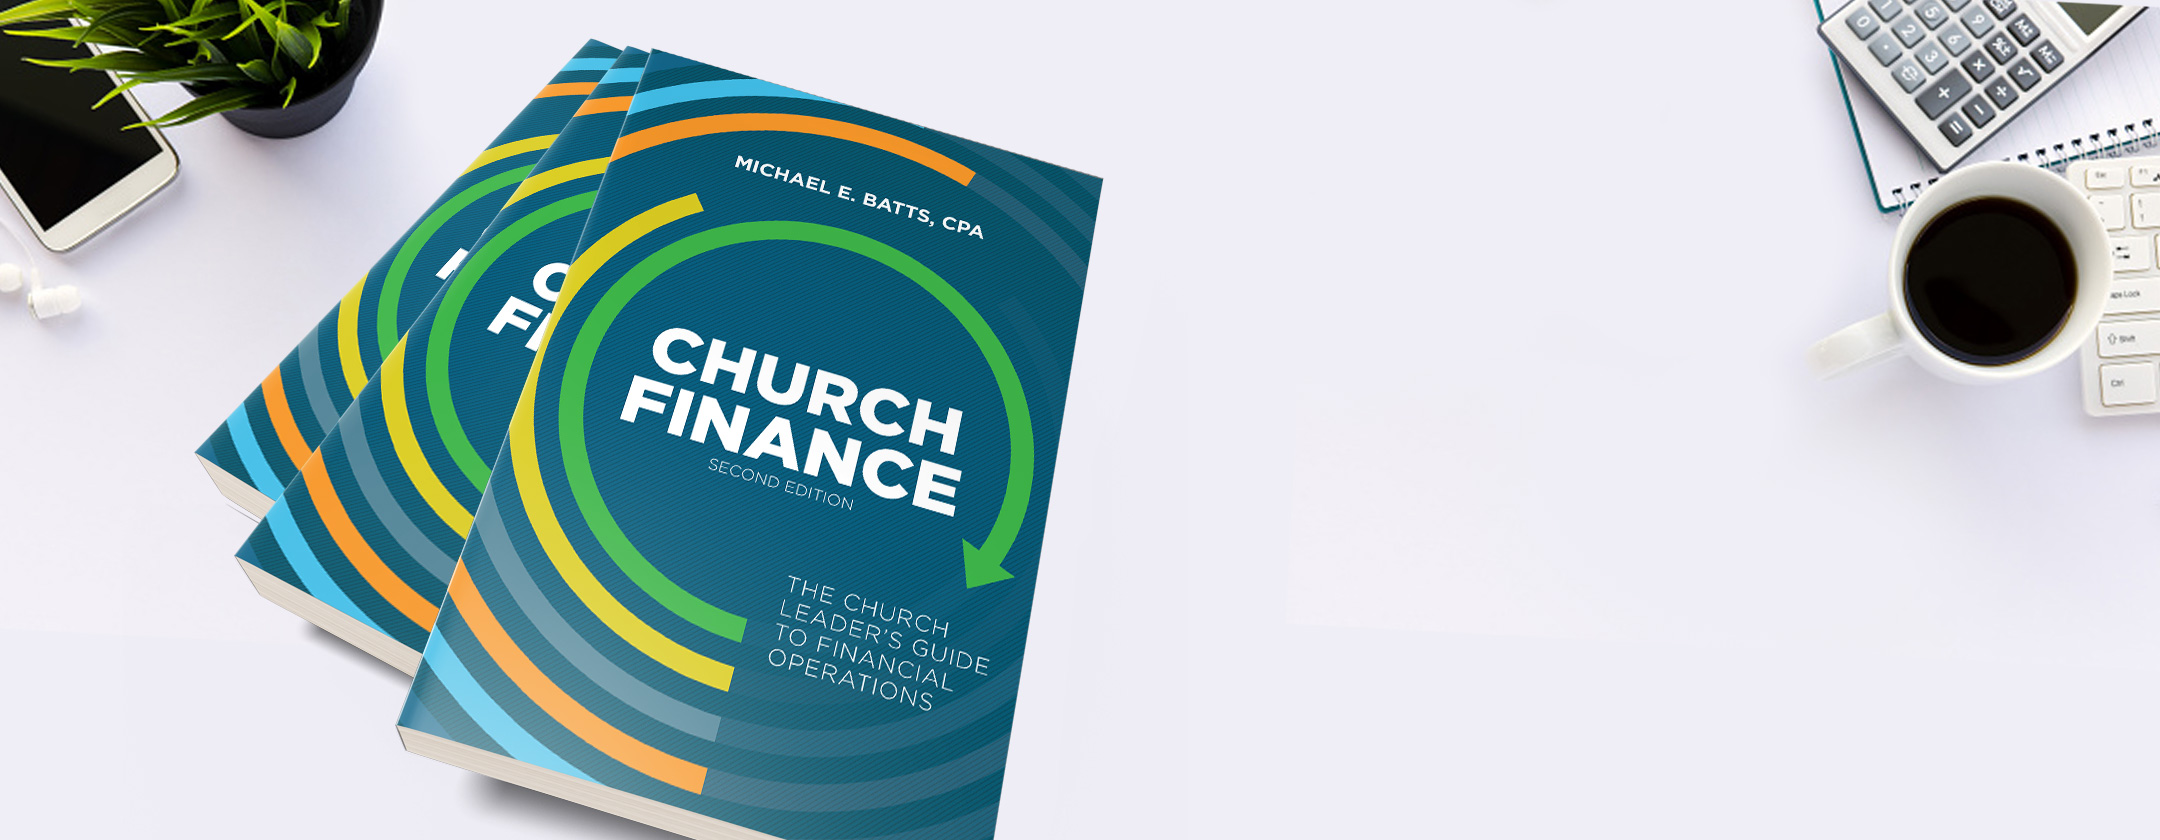 Church Finance